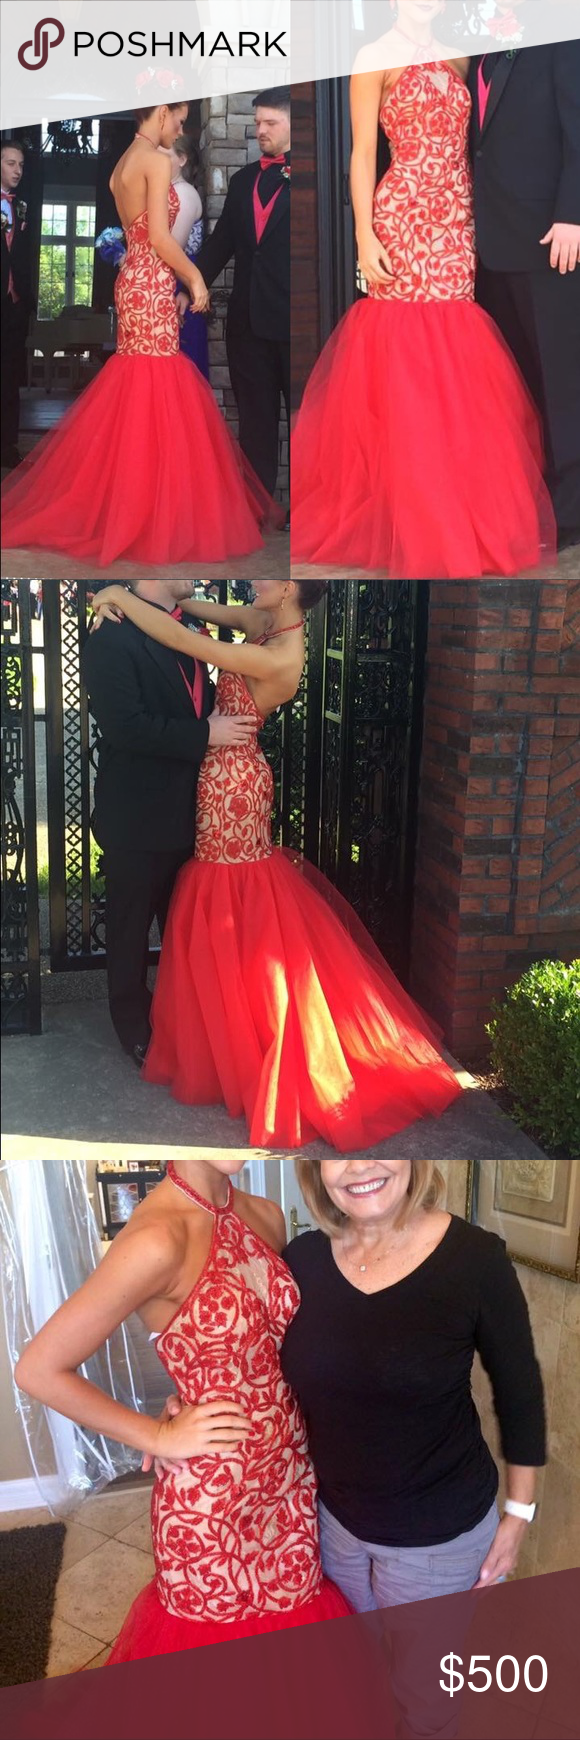 Red sherri hill prom dress size only worn once originally bought